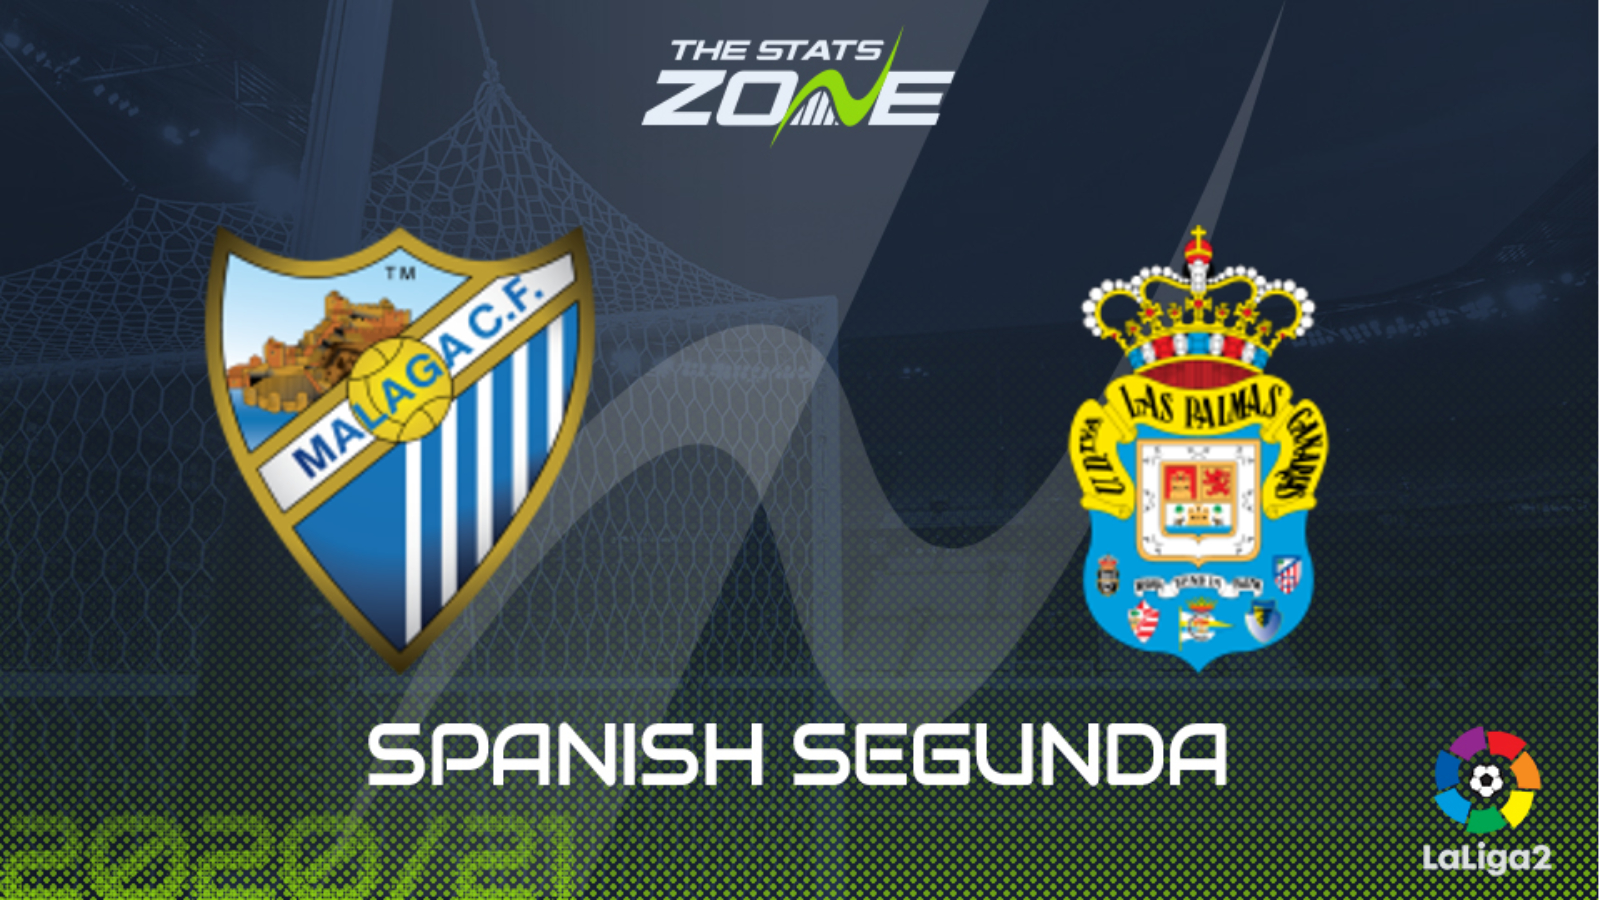 las palmas vs malaga betting tips